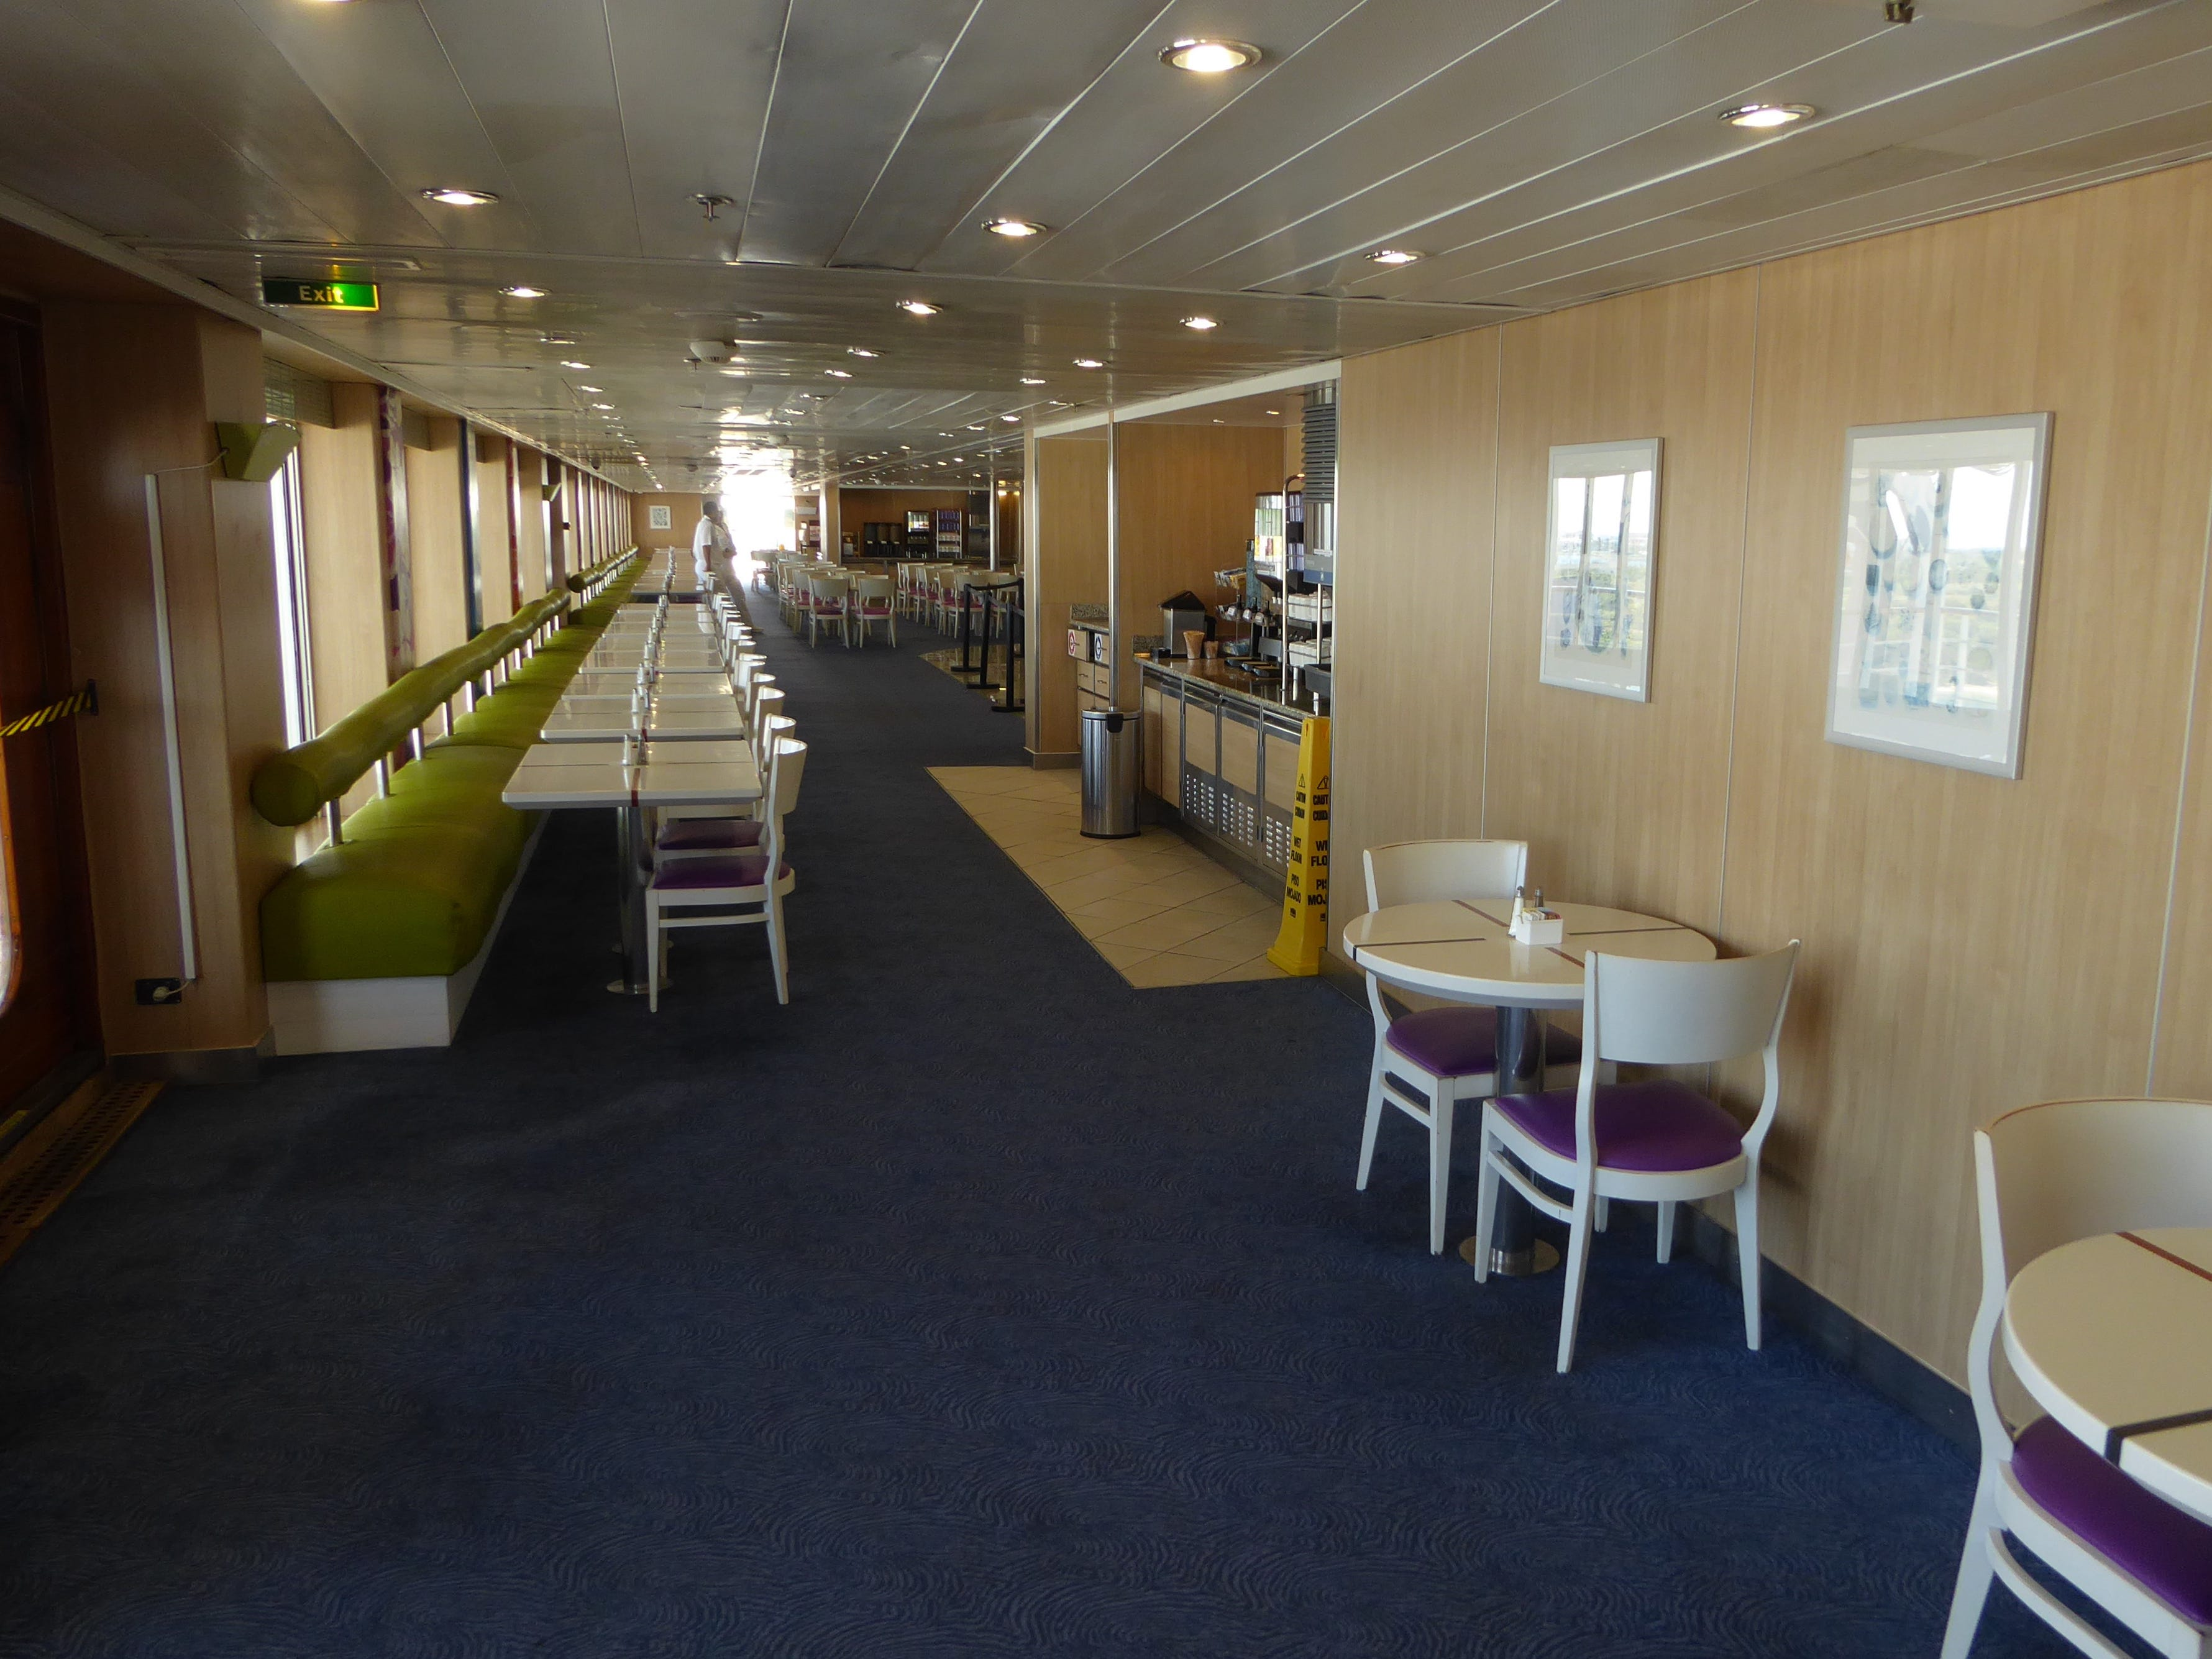 The Ocean View buffet is located aft of the La Piscina pool area on Luna Deck.